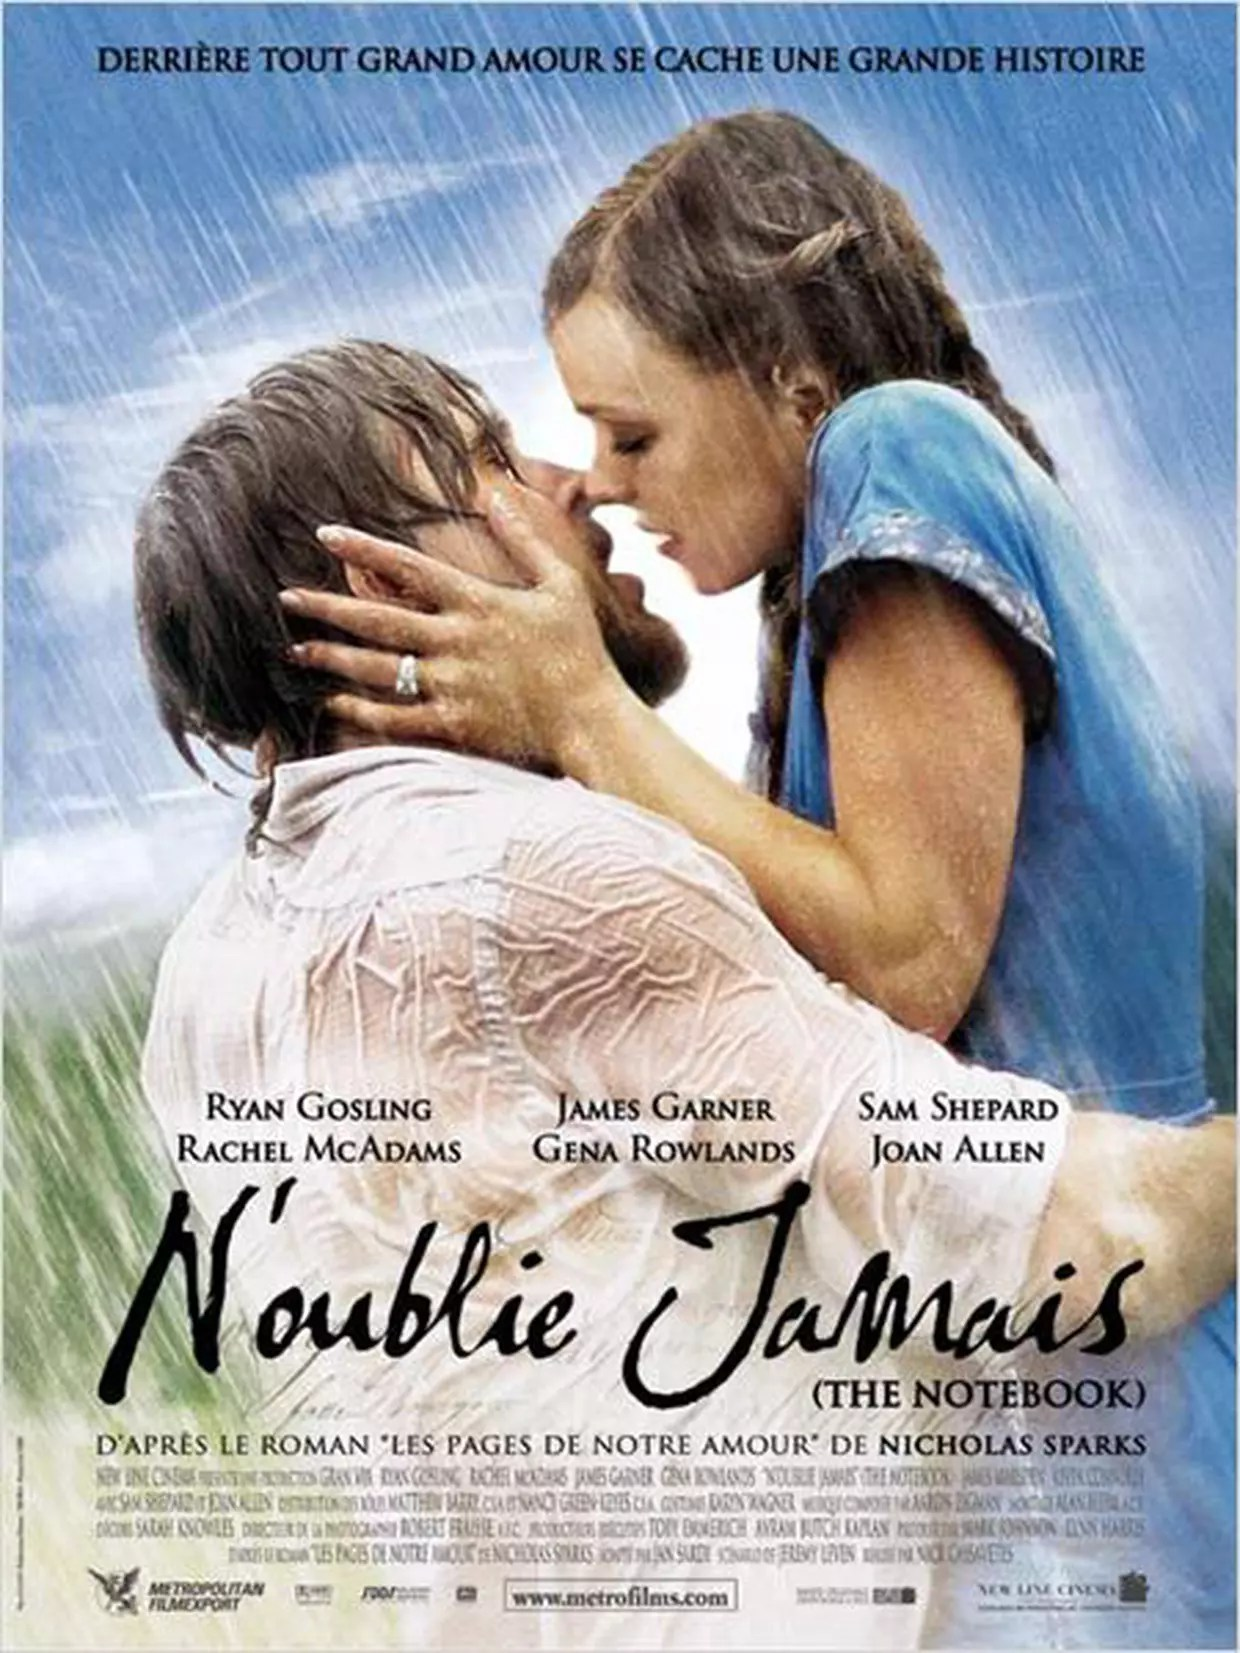 Bande Annonce N Oublie Jamais : bande, annonce, oublie, jamais, N'oublie, Jamais, Bande, Annonce, Film,, Séances,, Streaming,, Sortie,